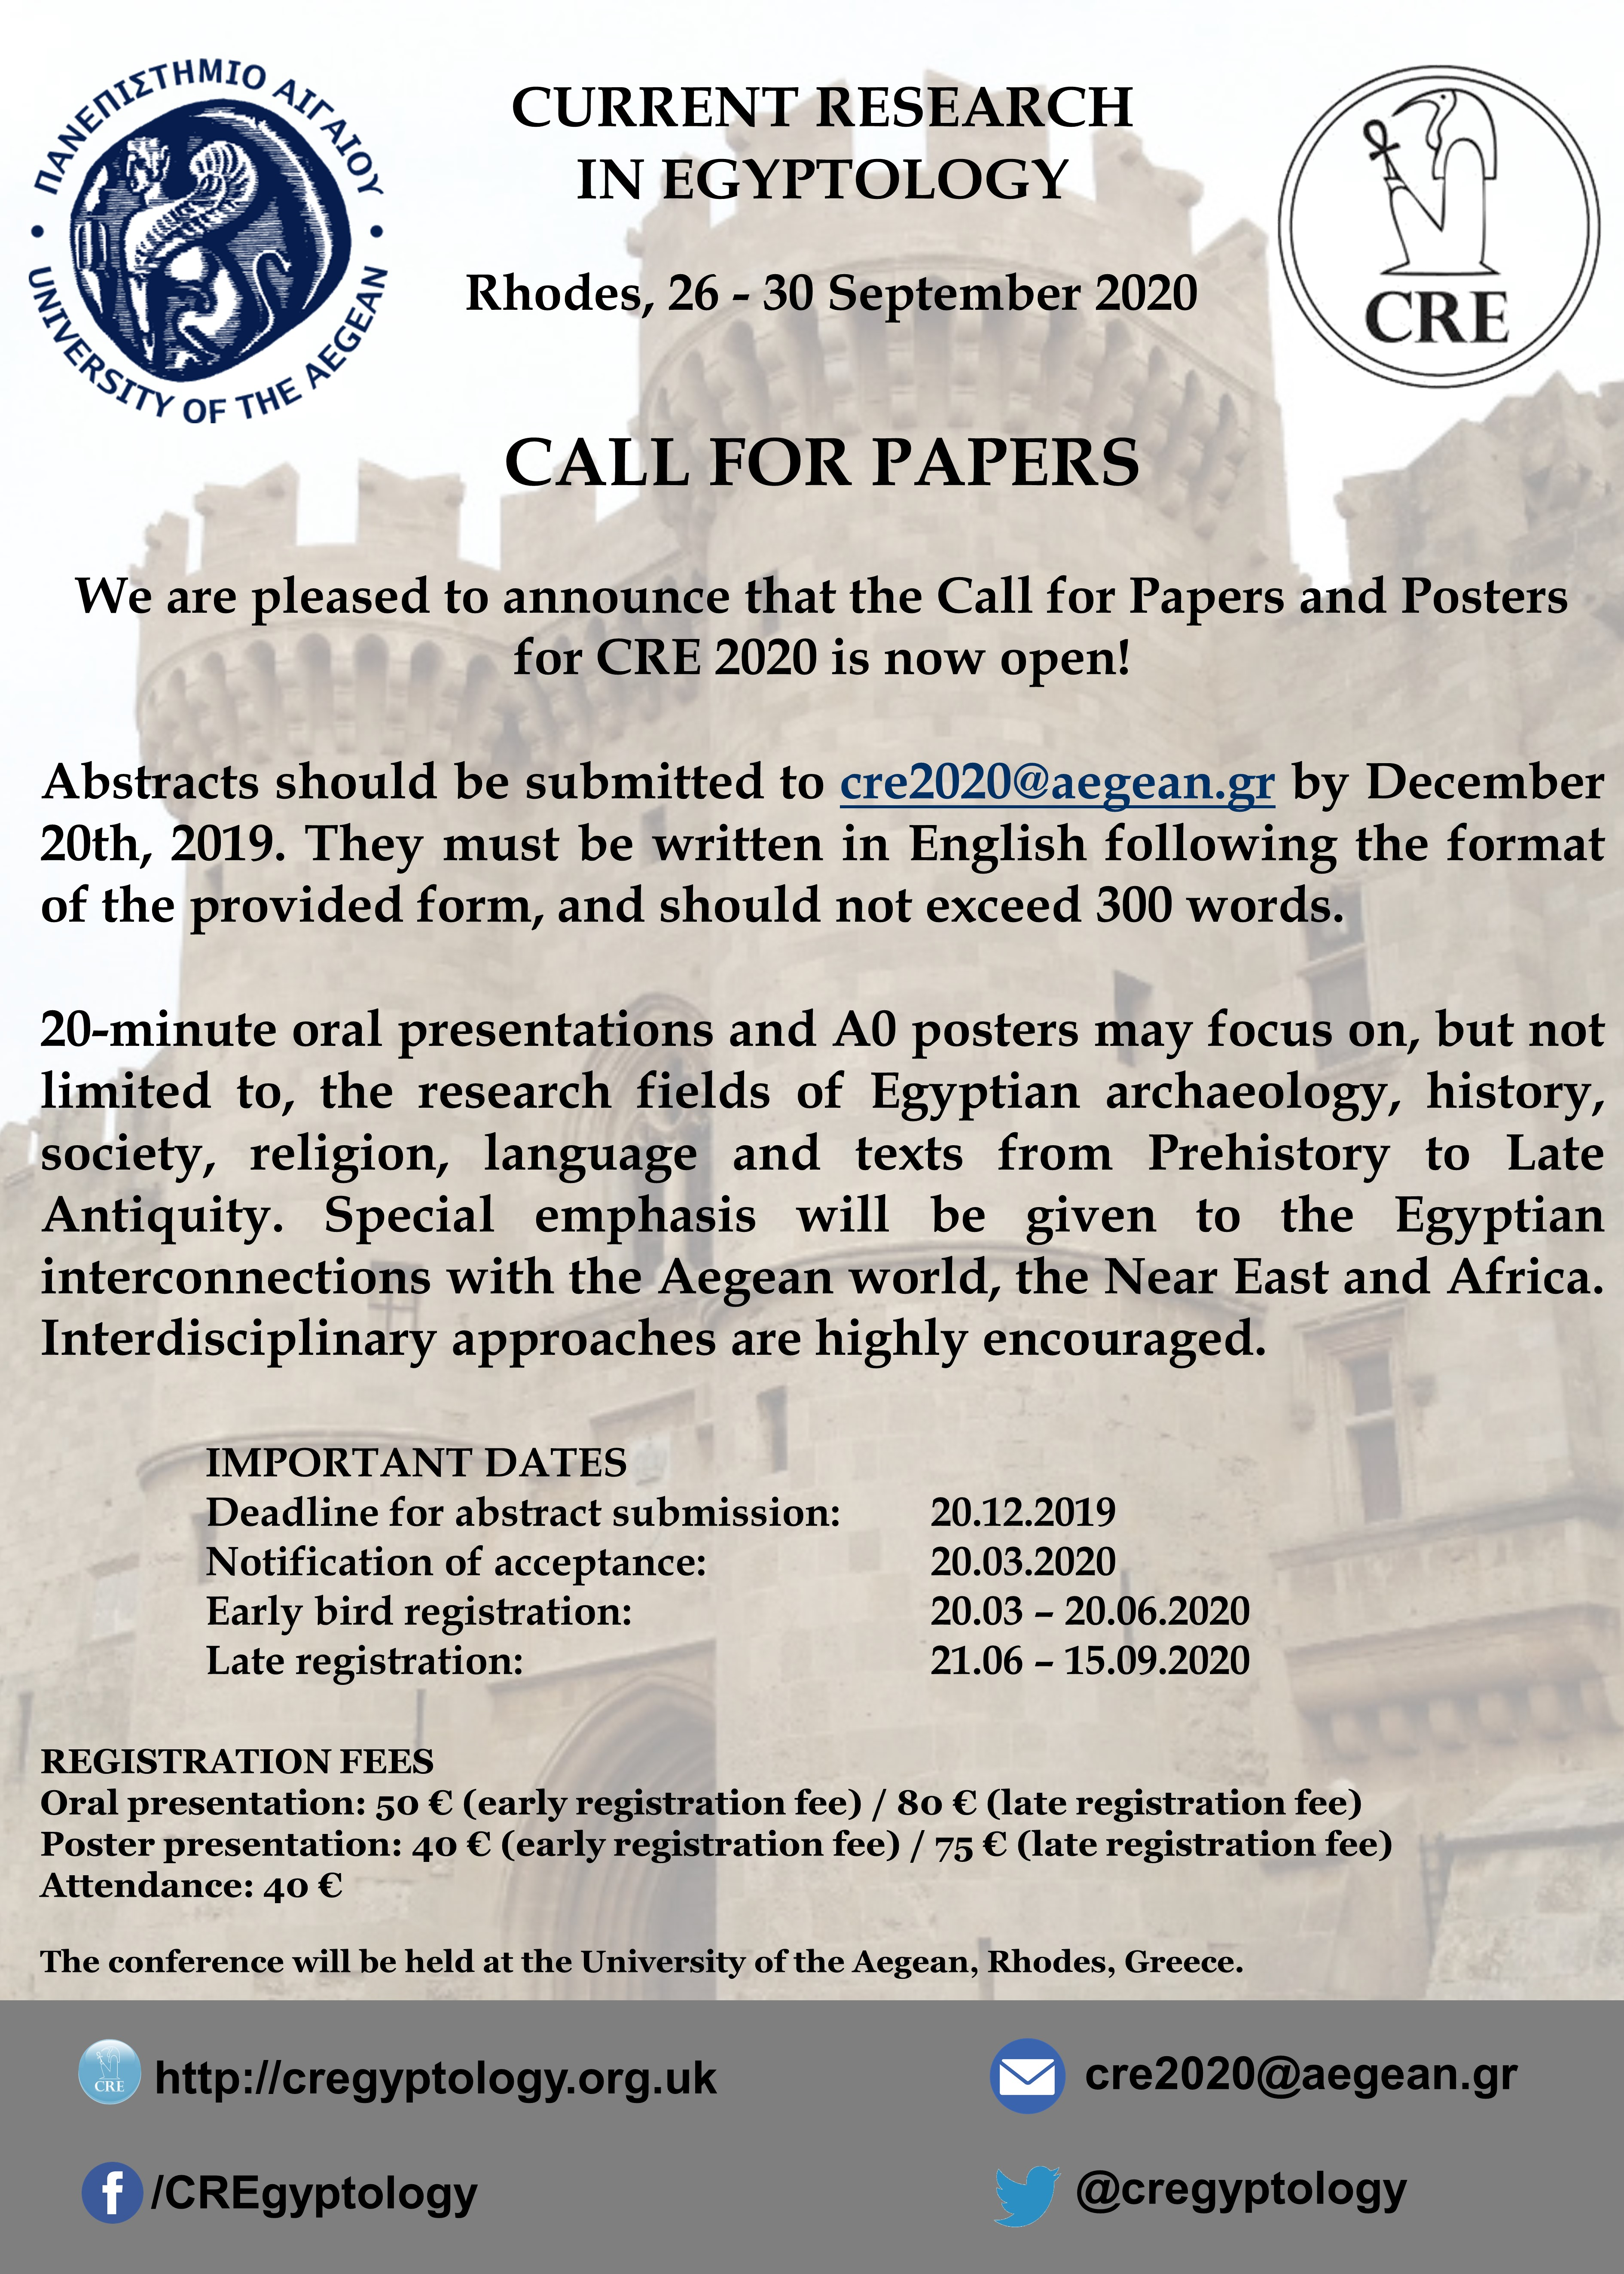 http://cregyptology.org.uk/wp-content/uploads/2019/09/CRE2020-CALL-FOR-PAPERS-3.jpg